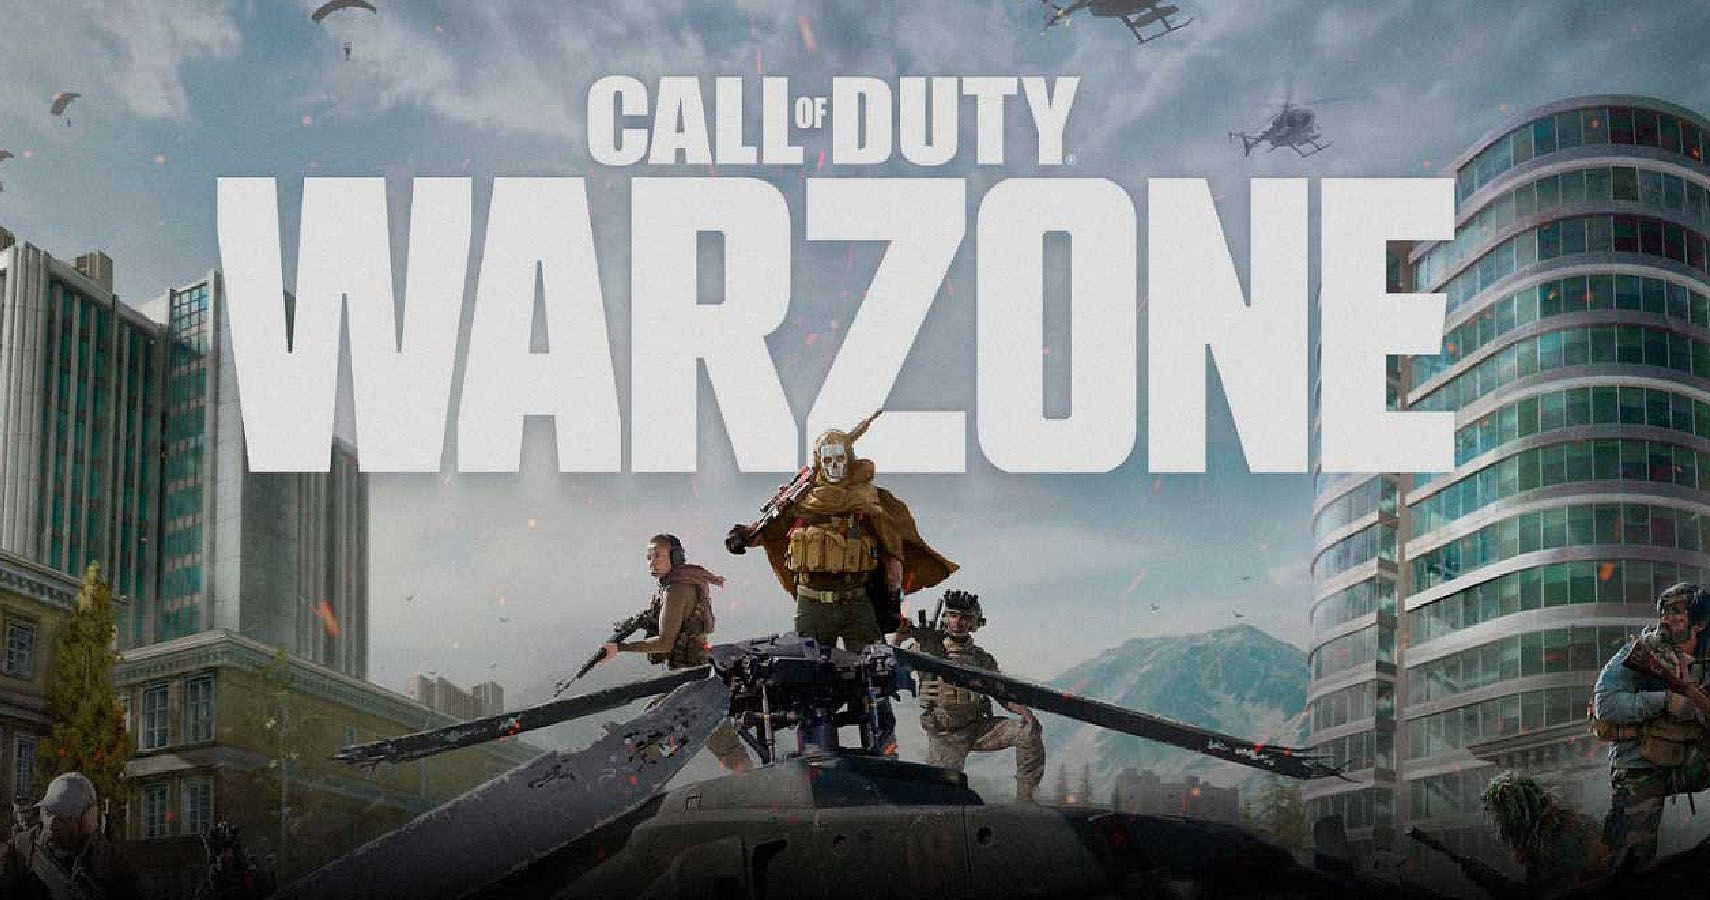 Call Of Duty Warzone: The 10 Best Weapons For Beginners